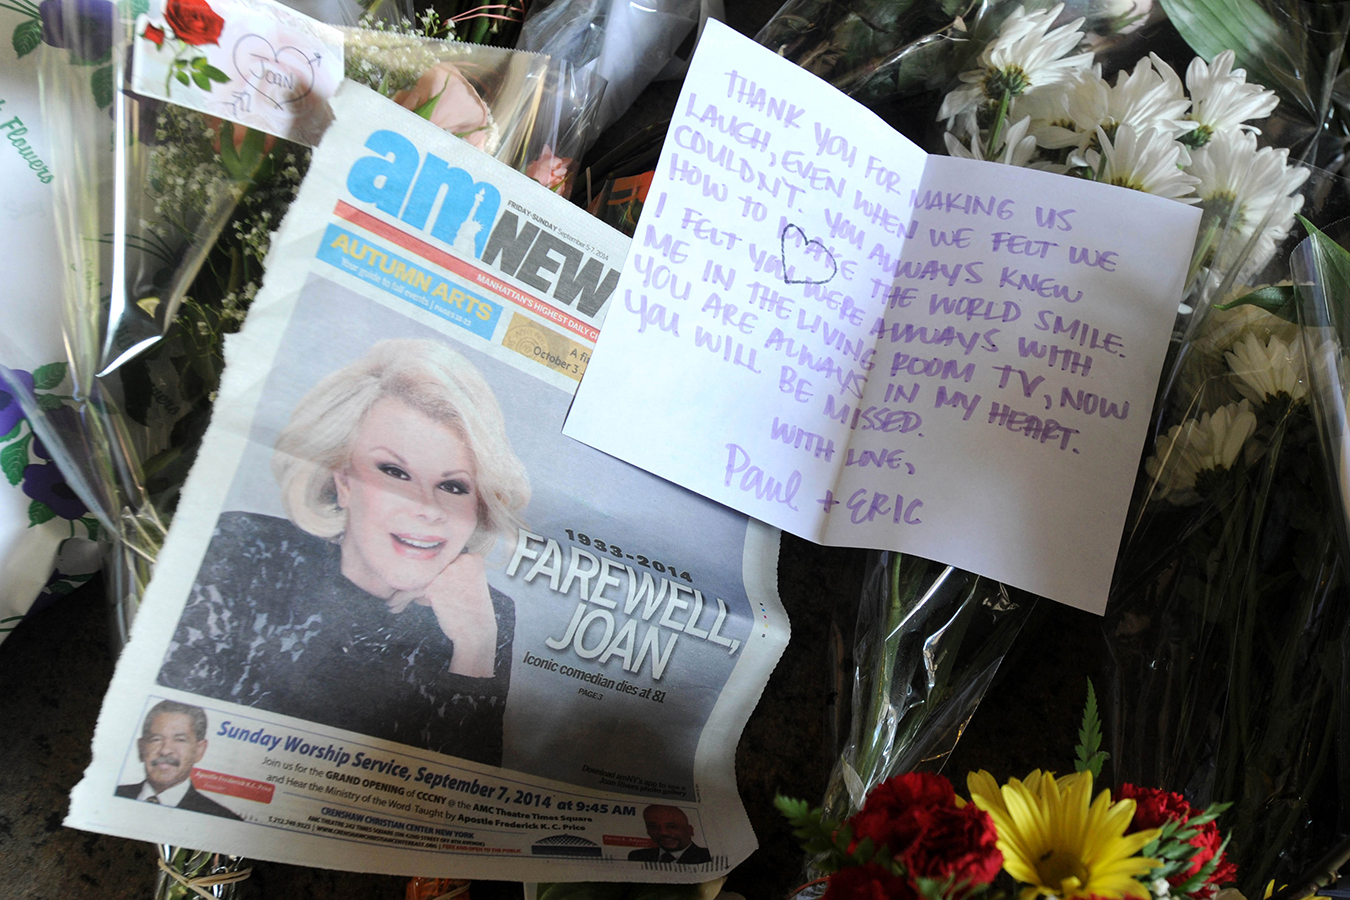 comedian Joan Rivers — who passed away in 2014 following a routine procedure at a Manhattan surgery center